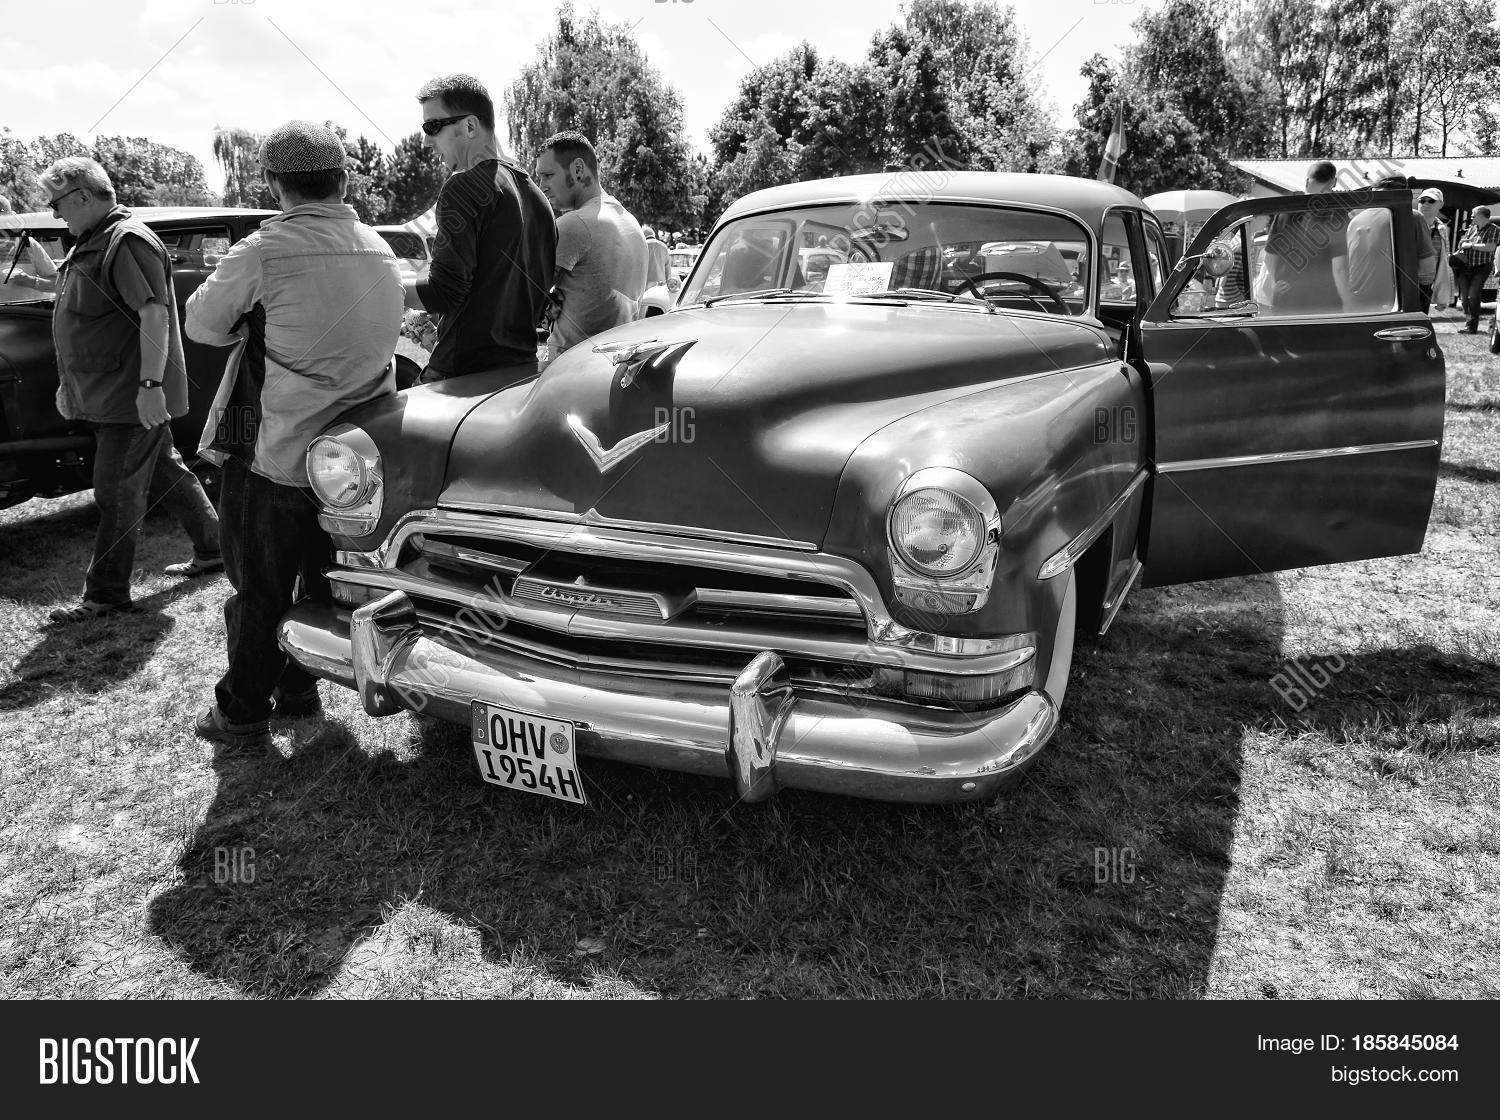 Paaren Im Glien Image Photo Free Trial Bigstock 1954 Chrysler New Yorker Germany May 19 Car